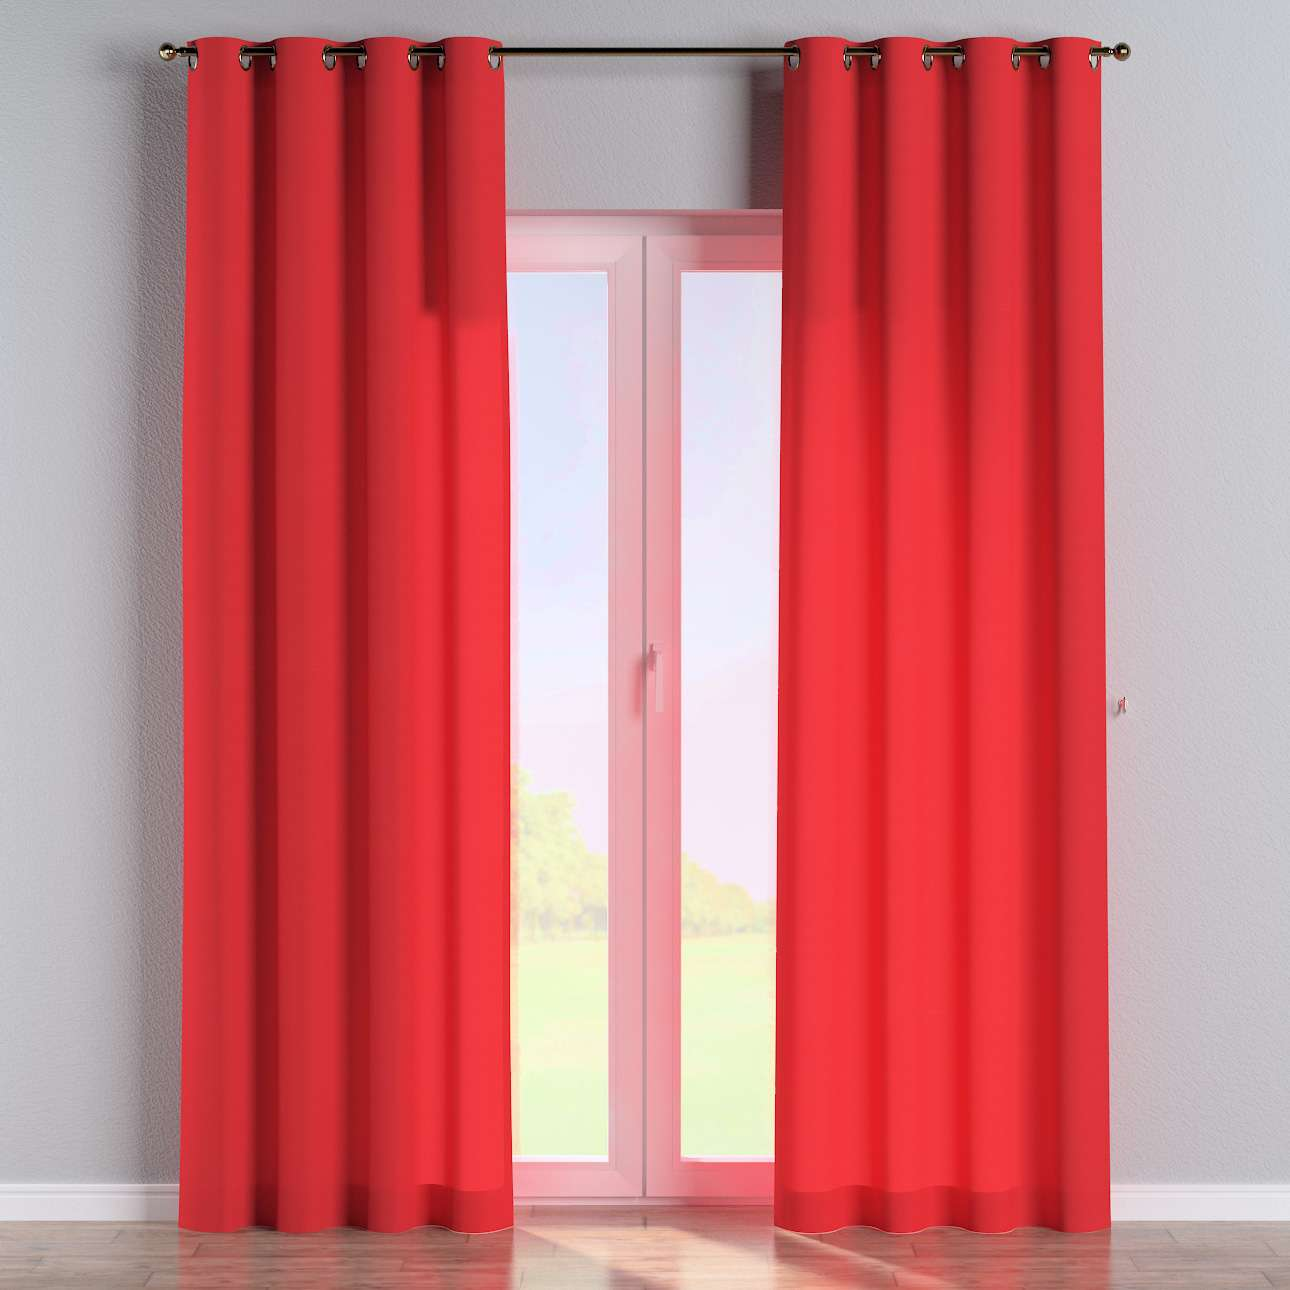 Eyelet curtains 130 x 260 cm (51 x 102 inch) in collection Loneta , fabric: 133-43